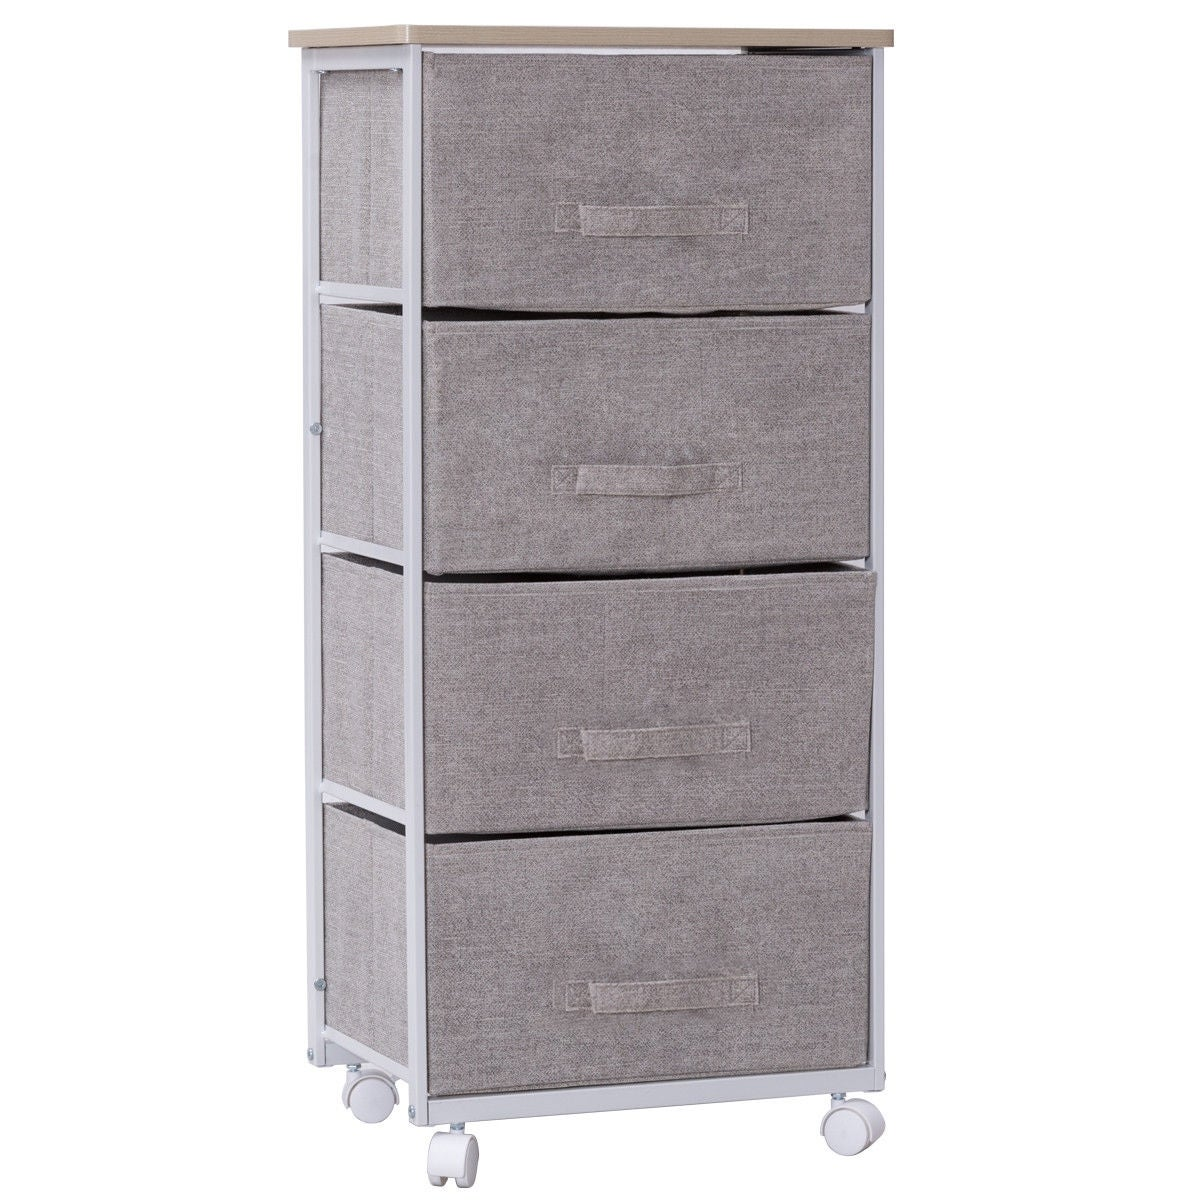 Gymax Fabric 4 Drawer Storage Unit Cart Organizer Shelf Laundry Bedroom Nursery Office - As Pic - Overstock - 20714596